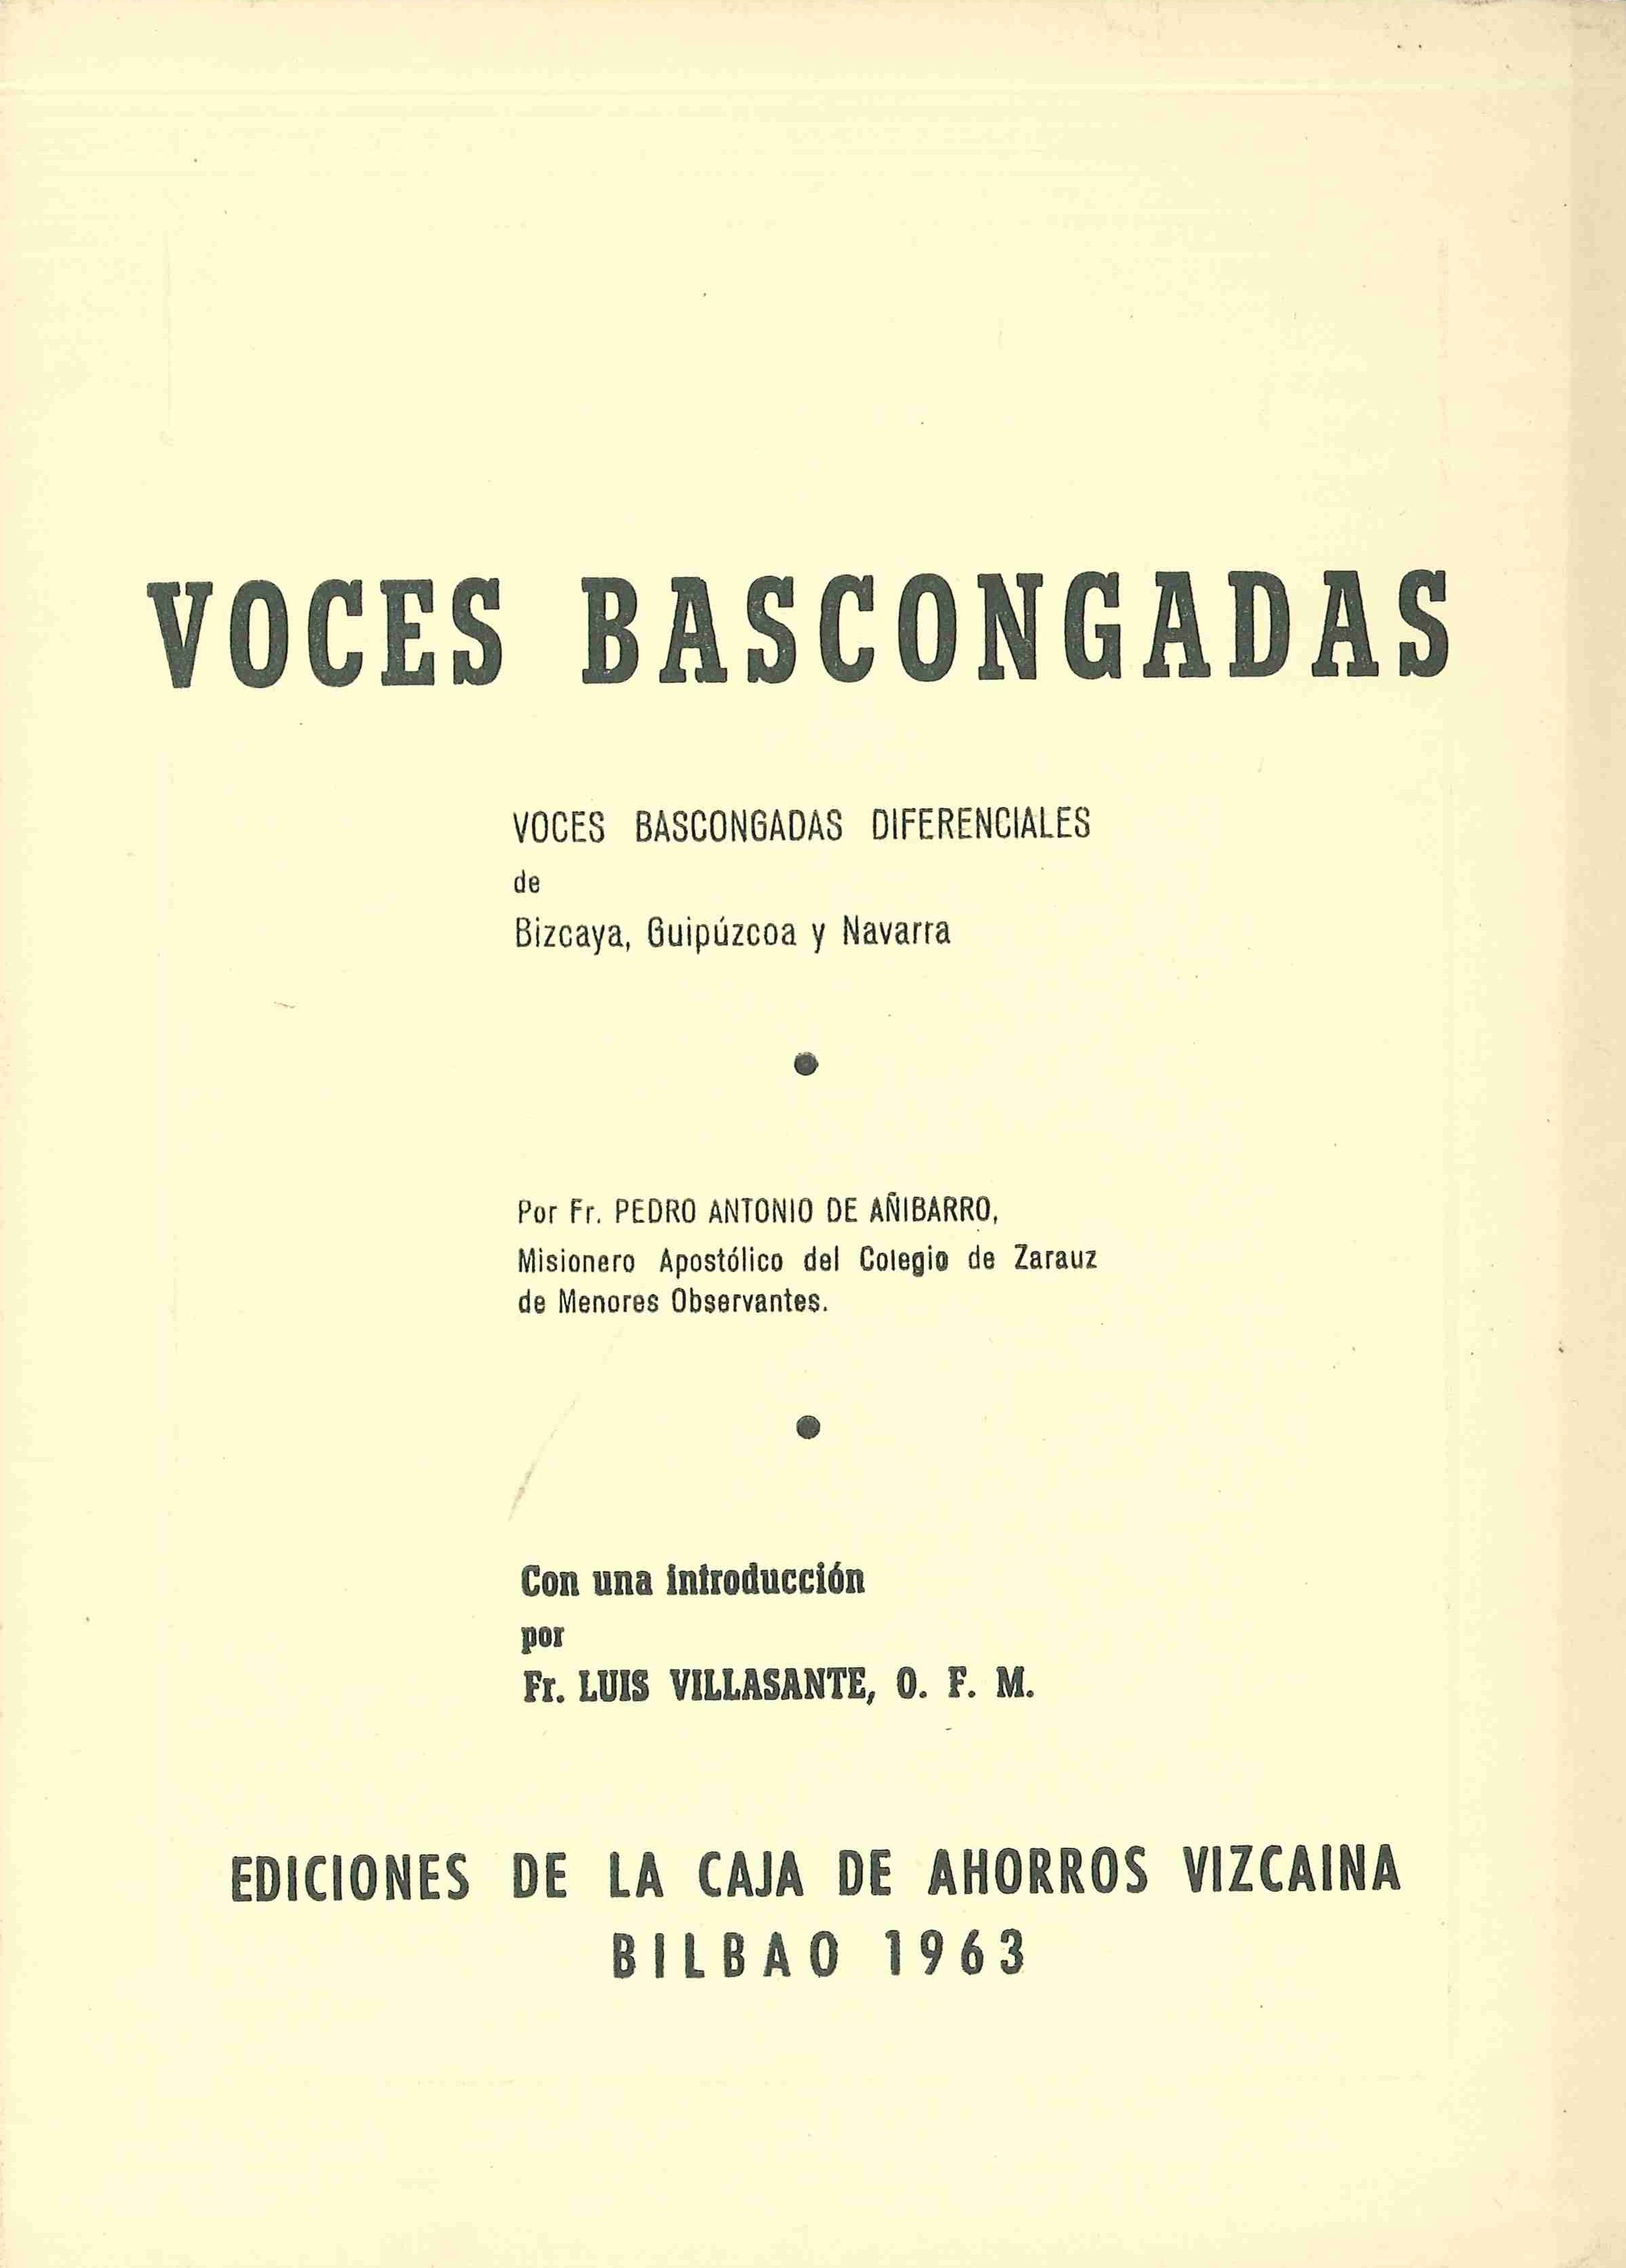 Voces bascongadas